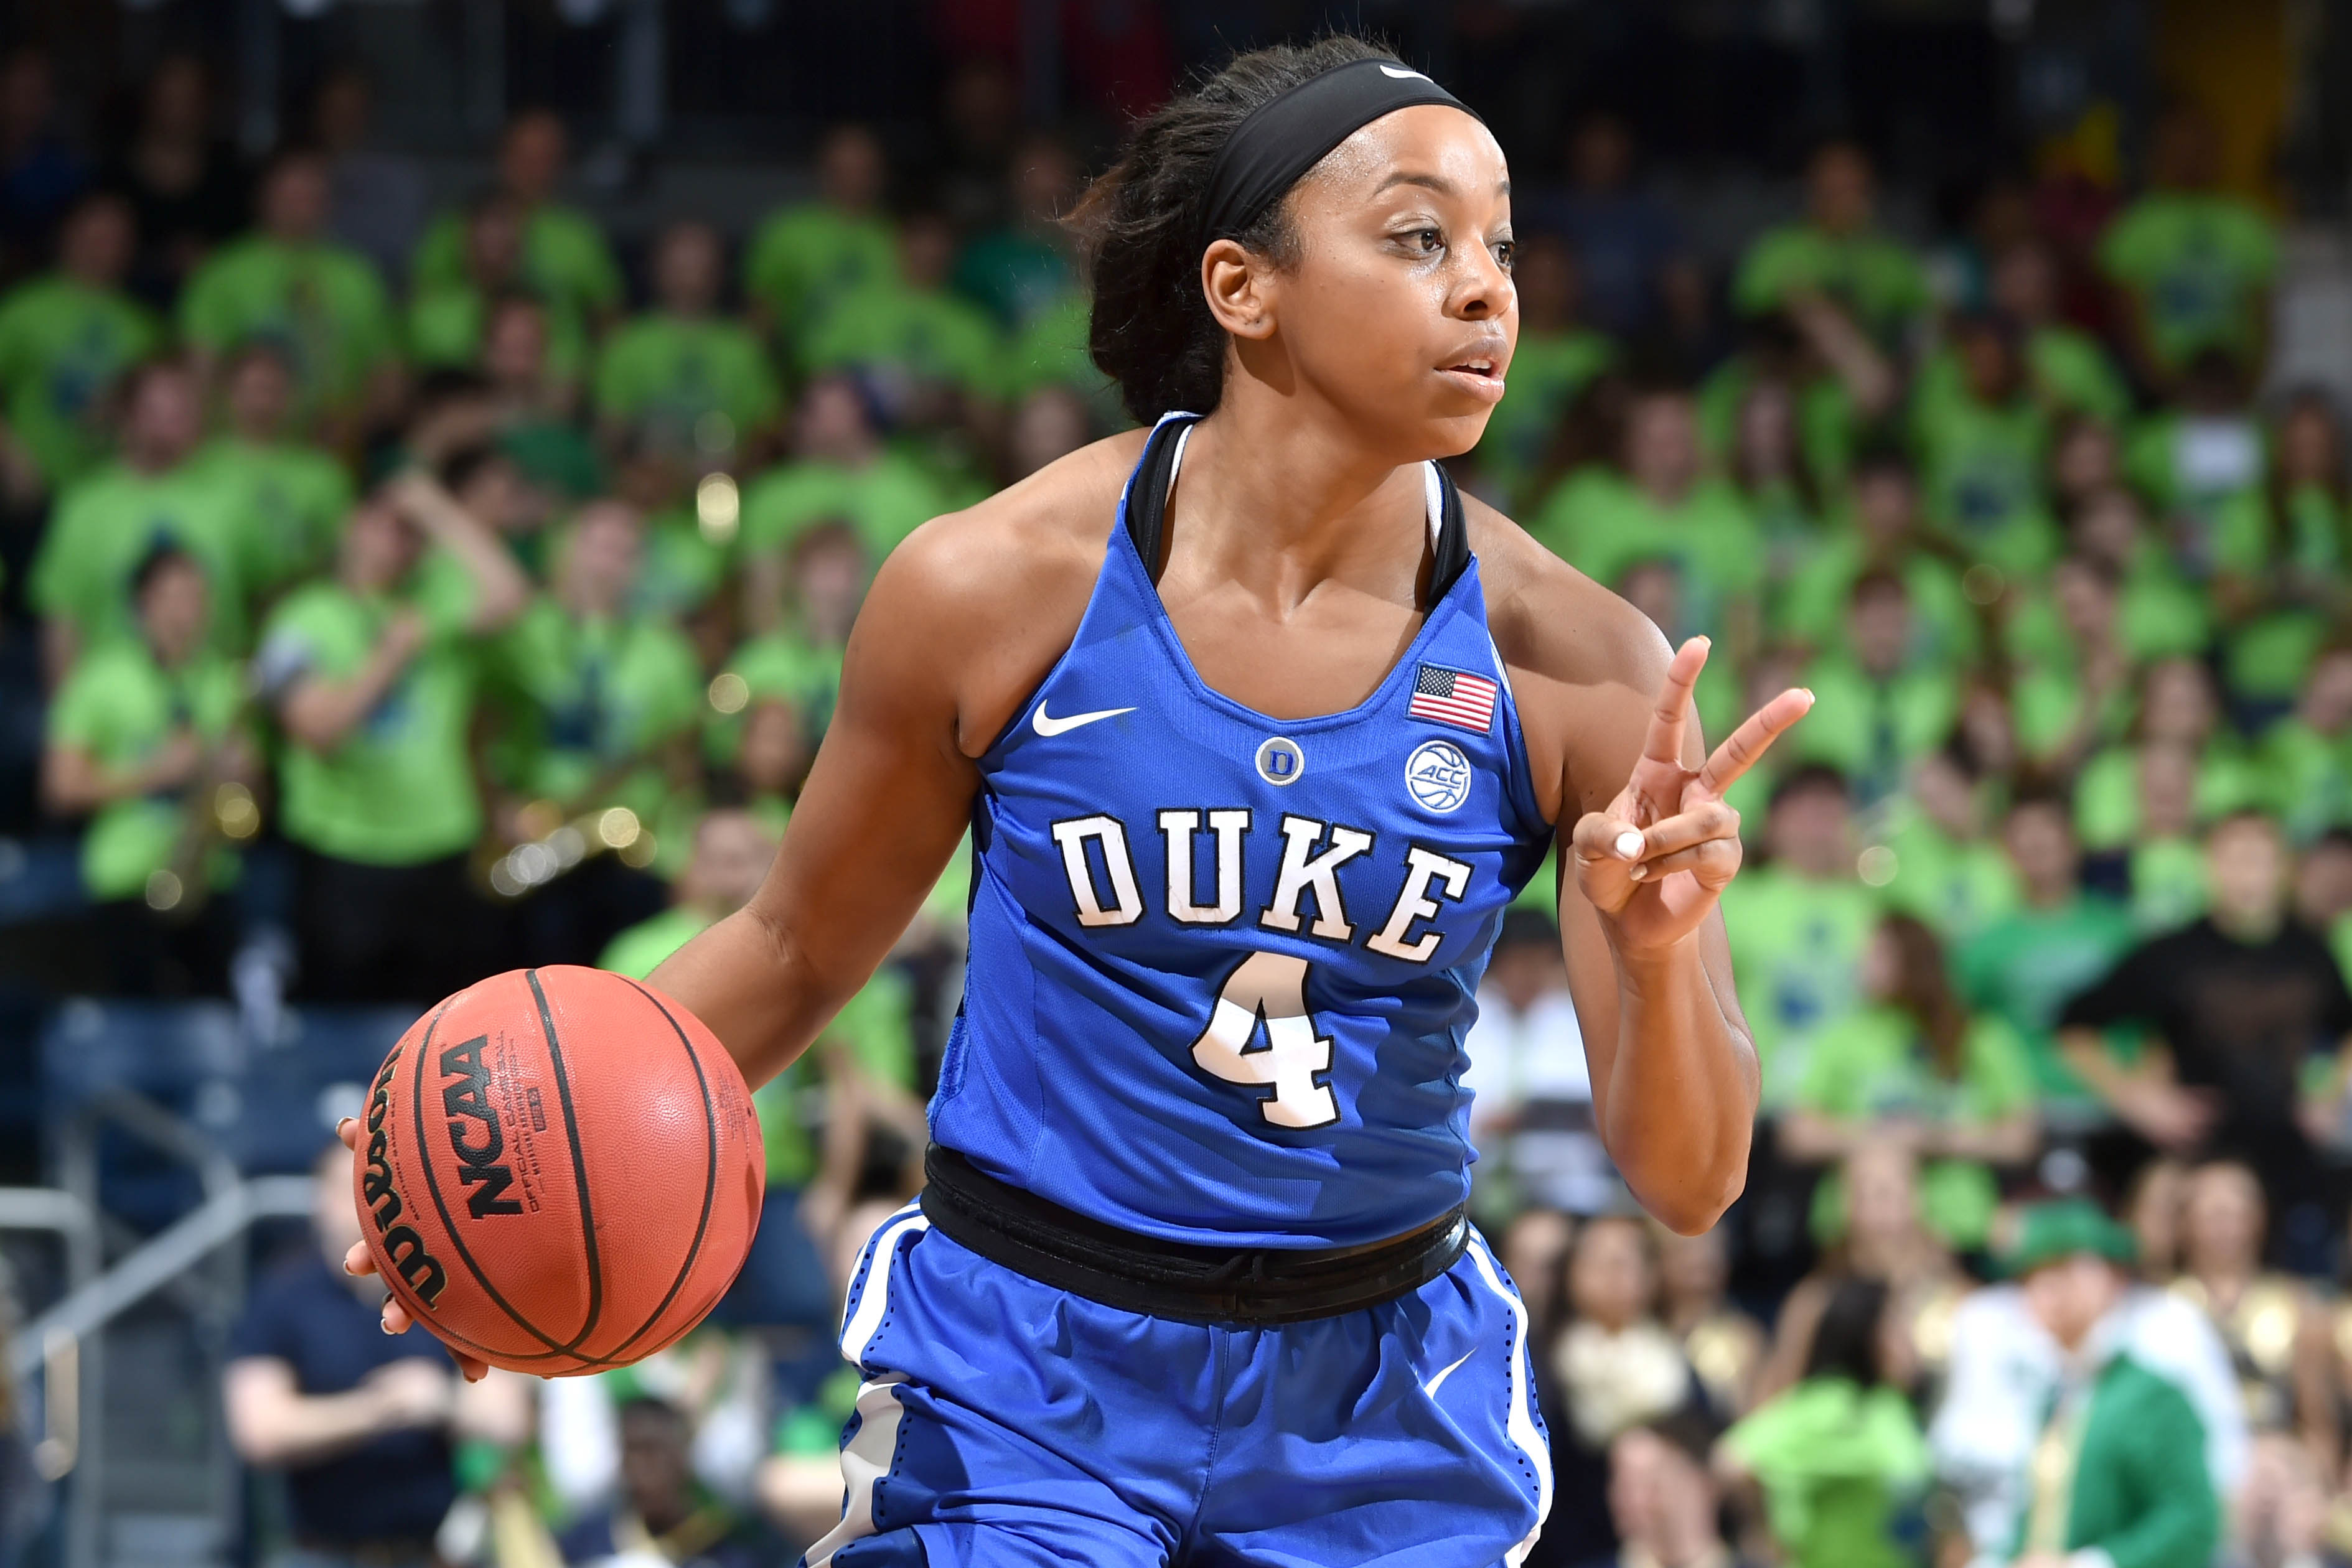 duke womens basketball adds three to allacc teams